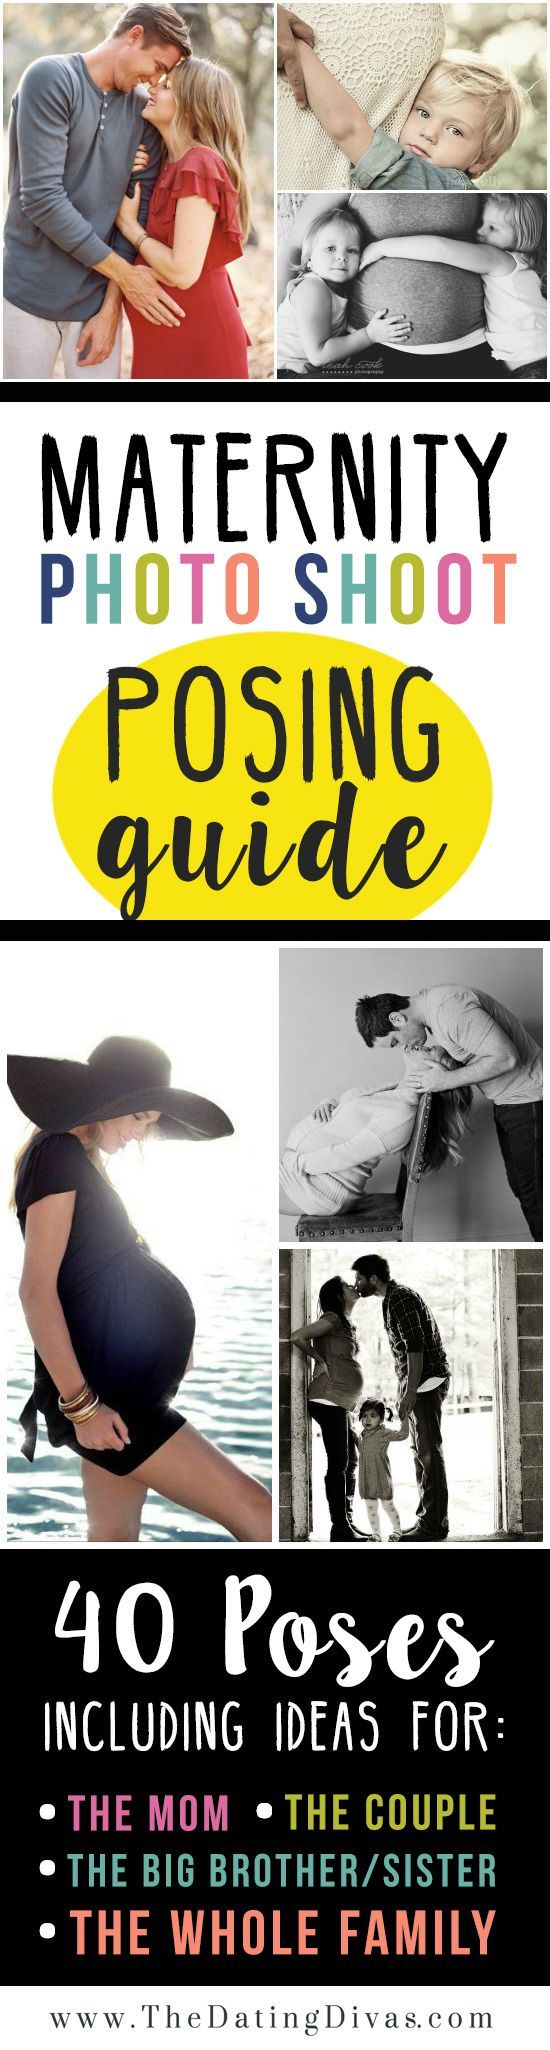 This post is LOADED with Maternity Photography Inspiration! Pose ideas for moms, couples, siblings, AND families.